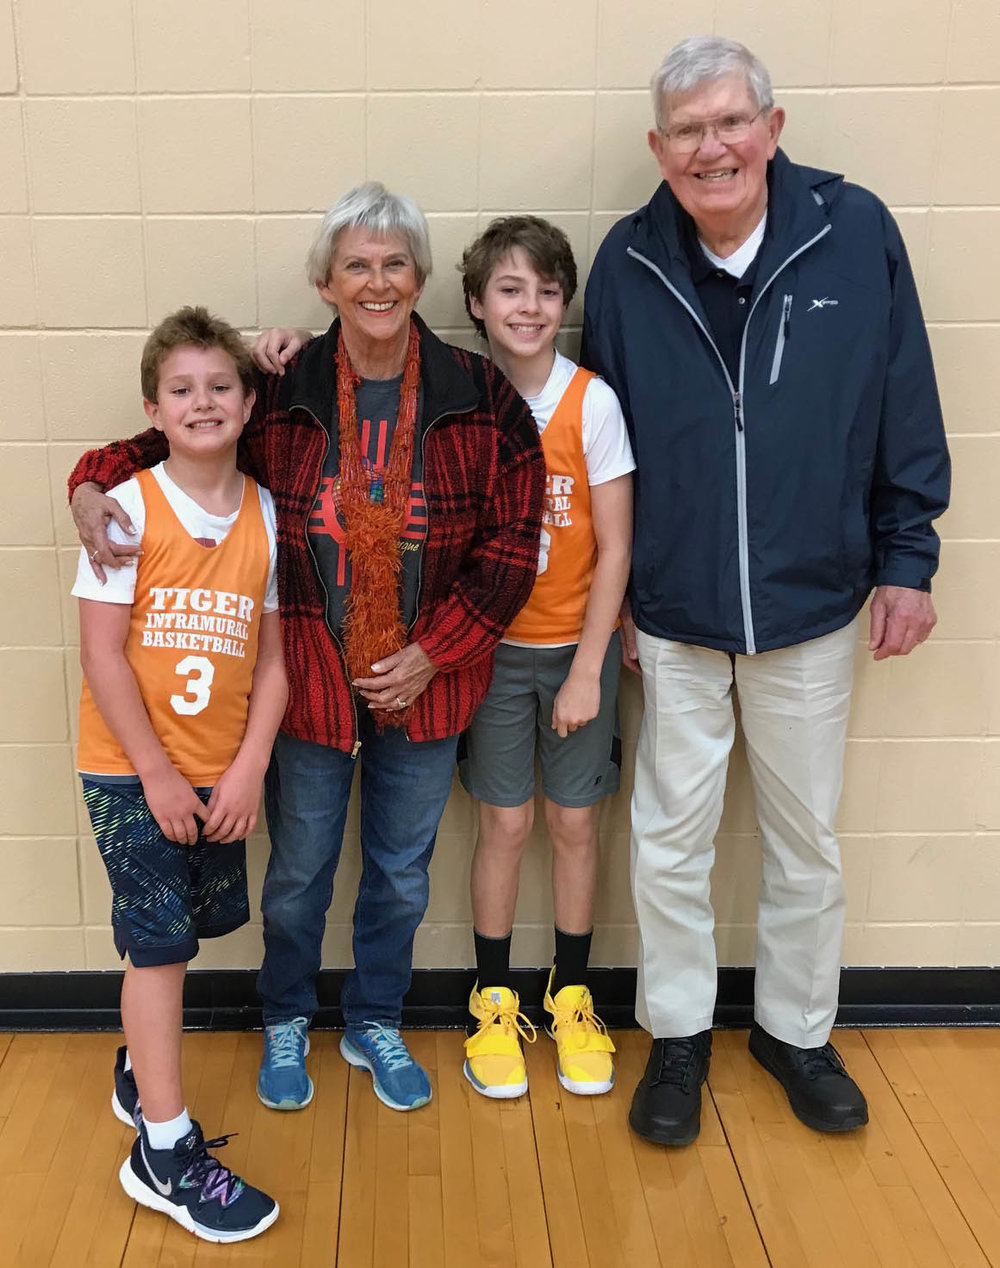 This past January, Mary Jane and David congratulated grandsons, Adam and Alex, after playing in their basketball games at Texas Middle School.